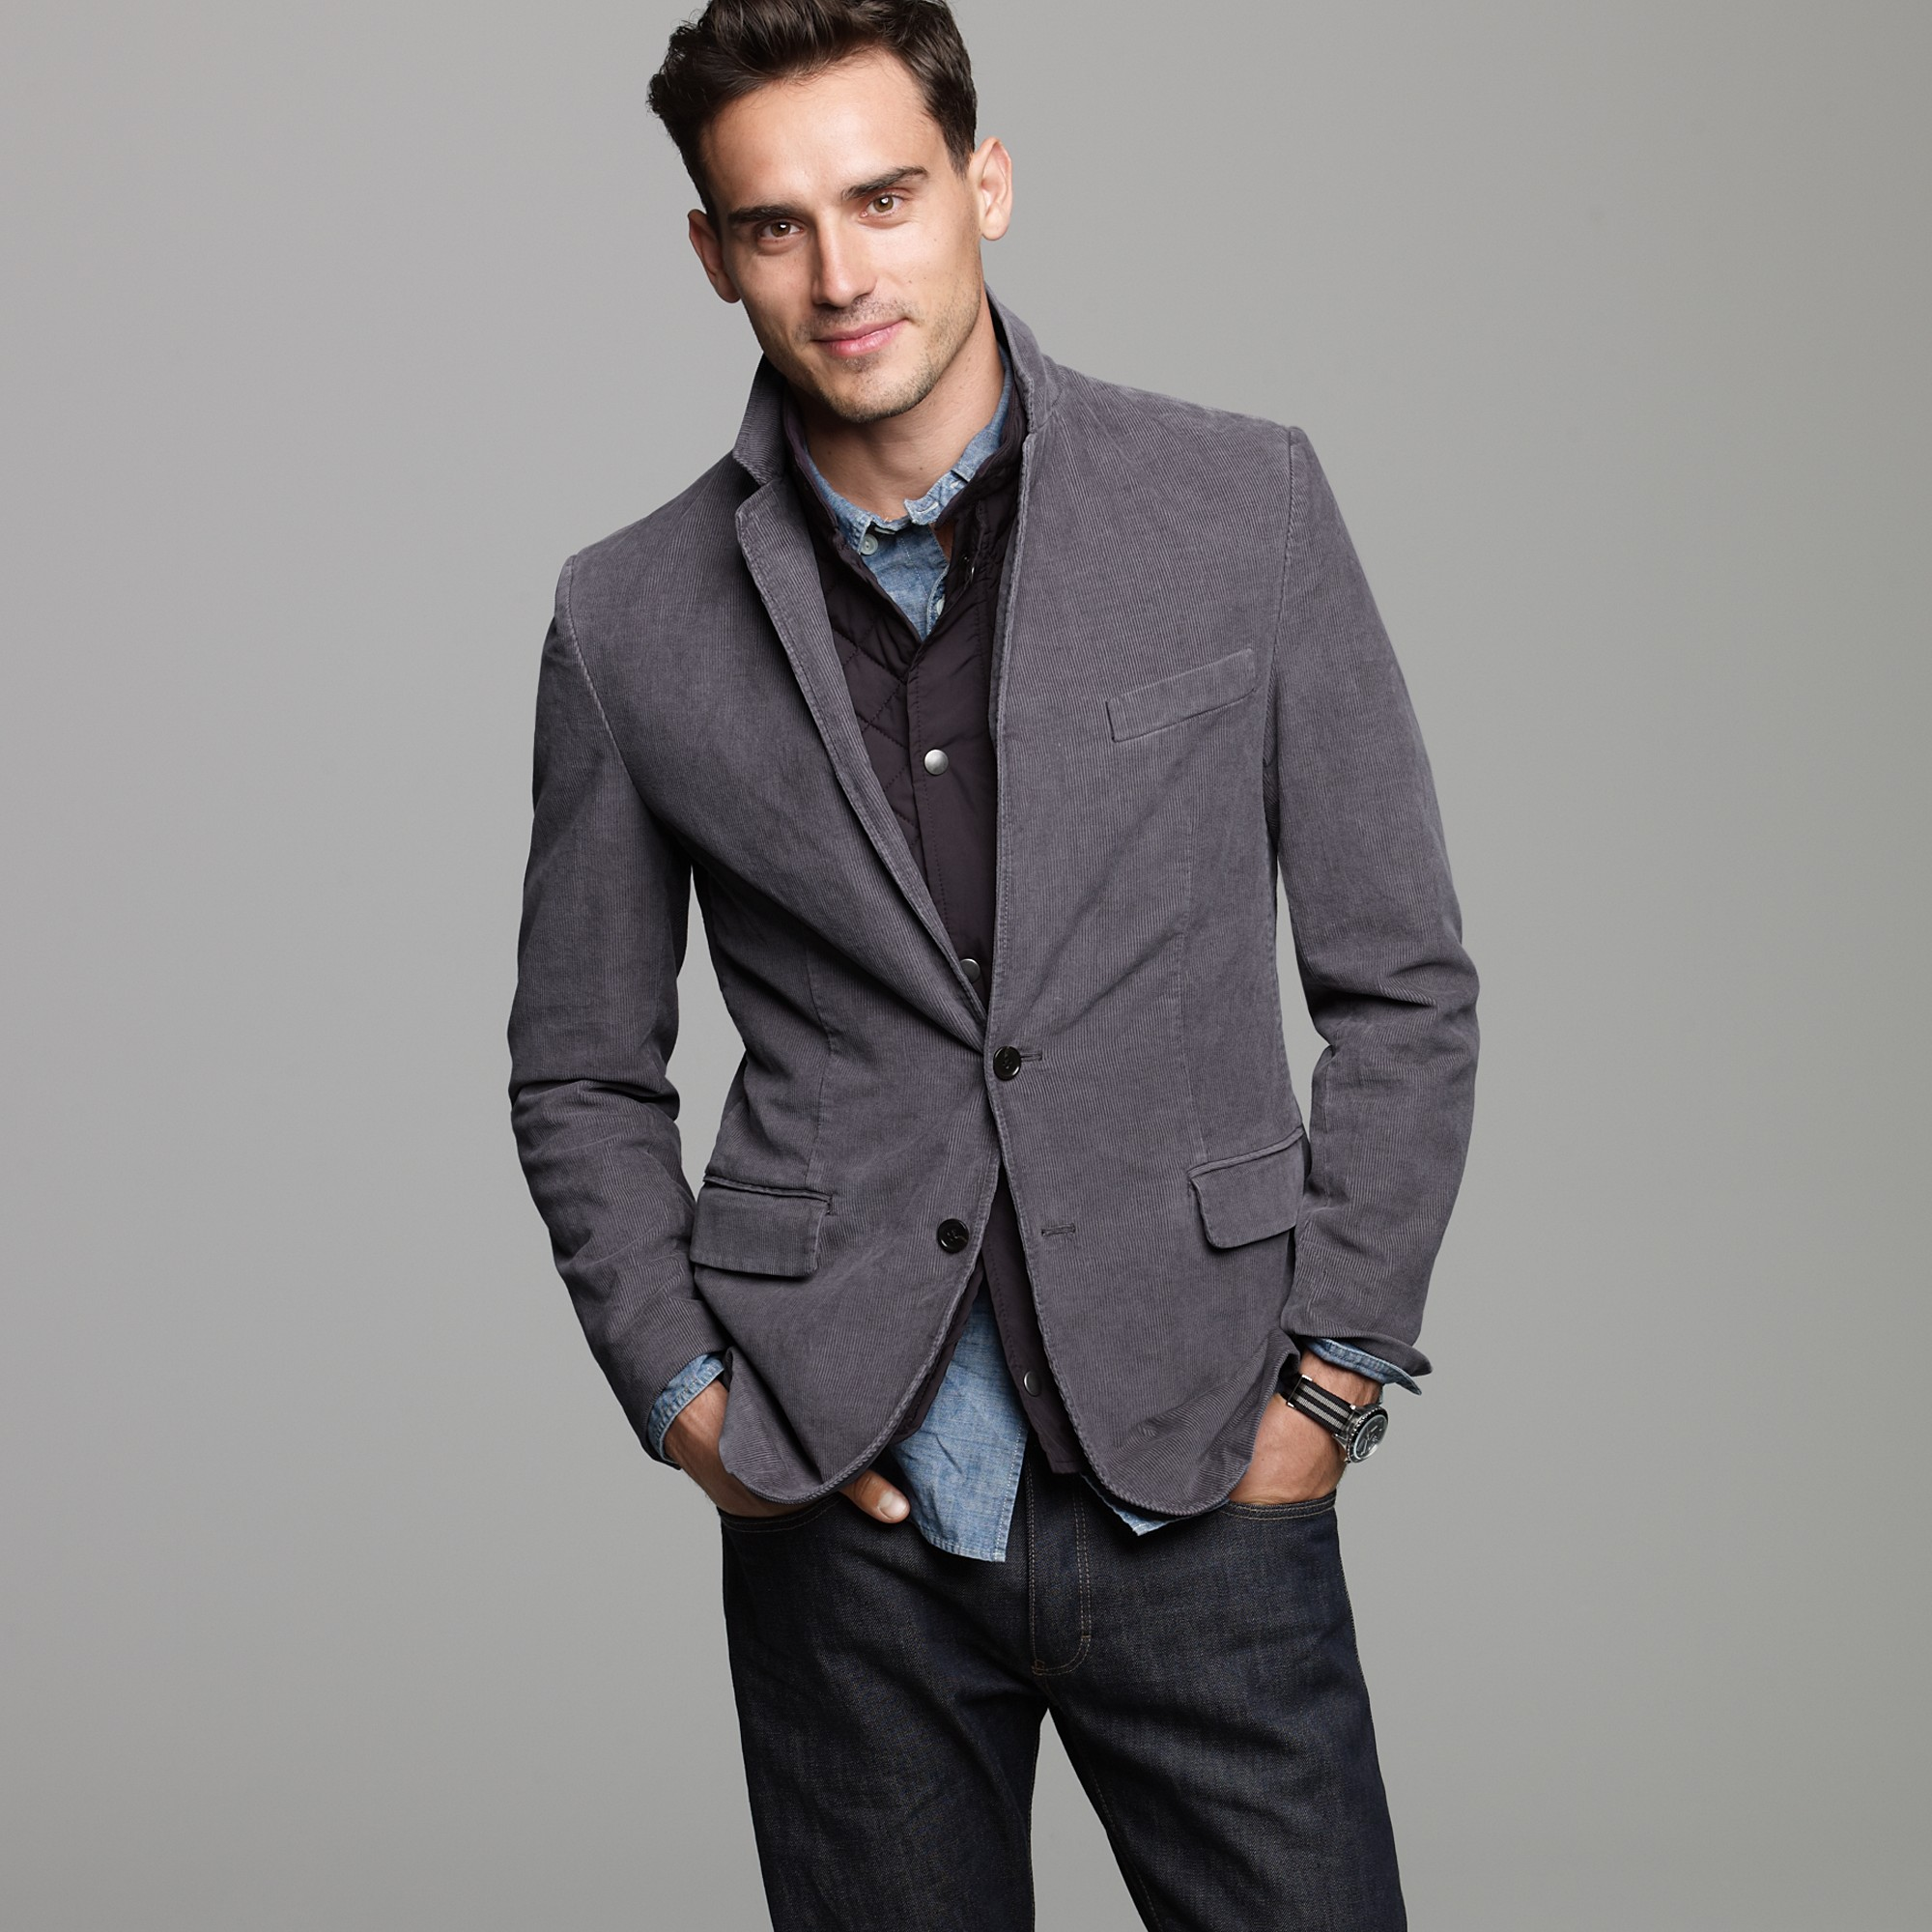 Free shipping and returns on Men's Grey Blazers & Sport Coats at dirtyinstalzonevx6.ga